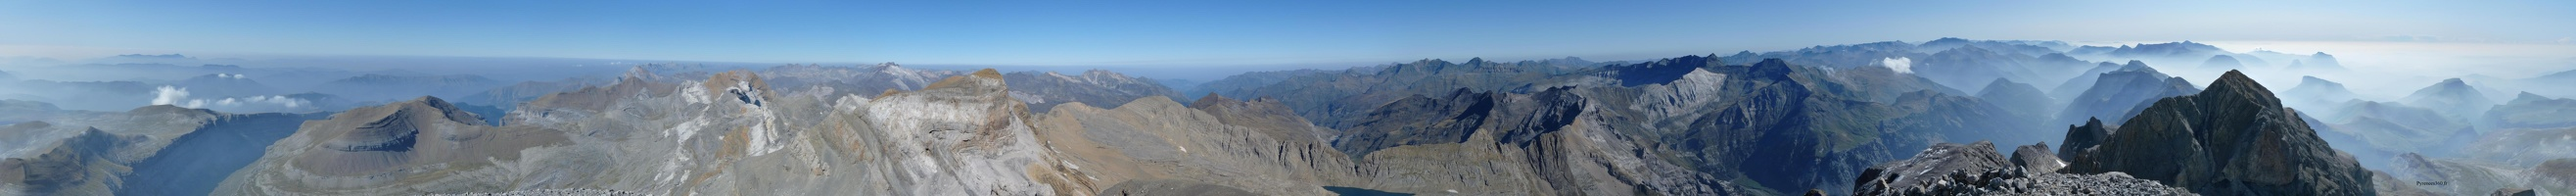 Panorama from the Monte Perdido